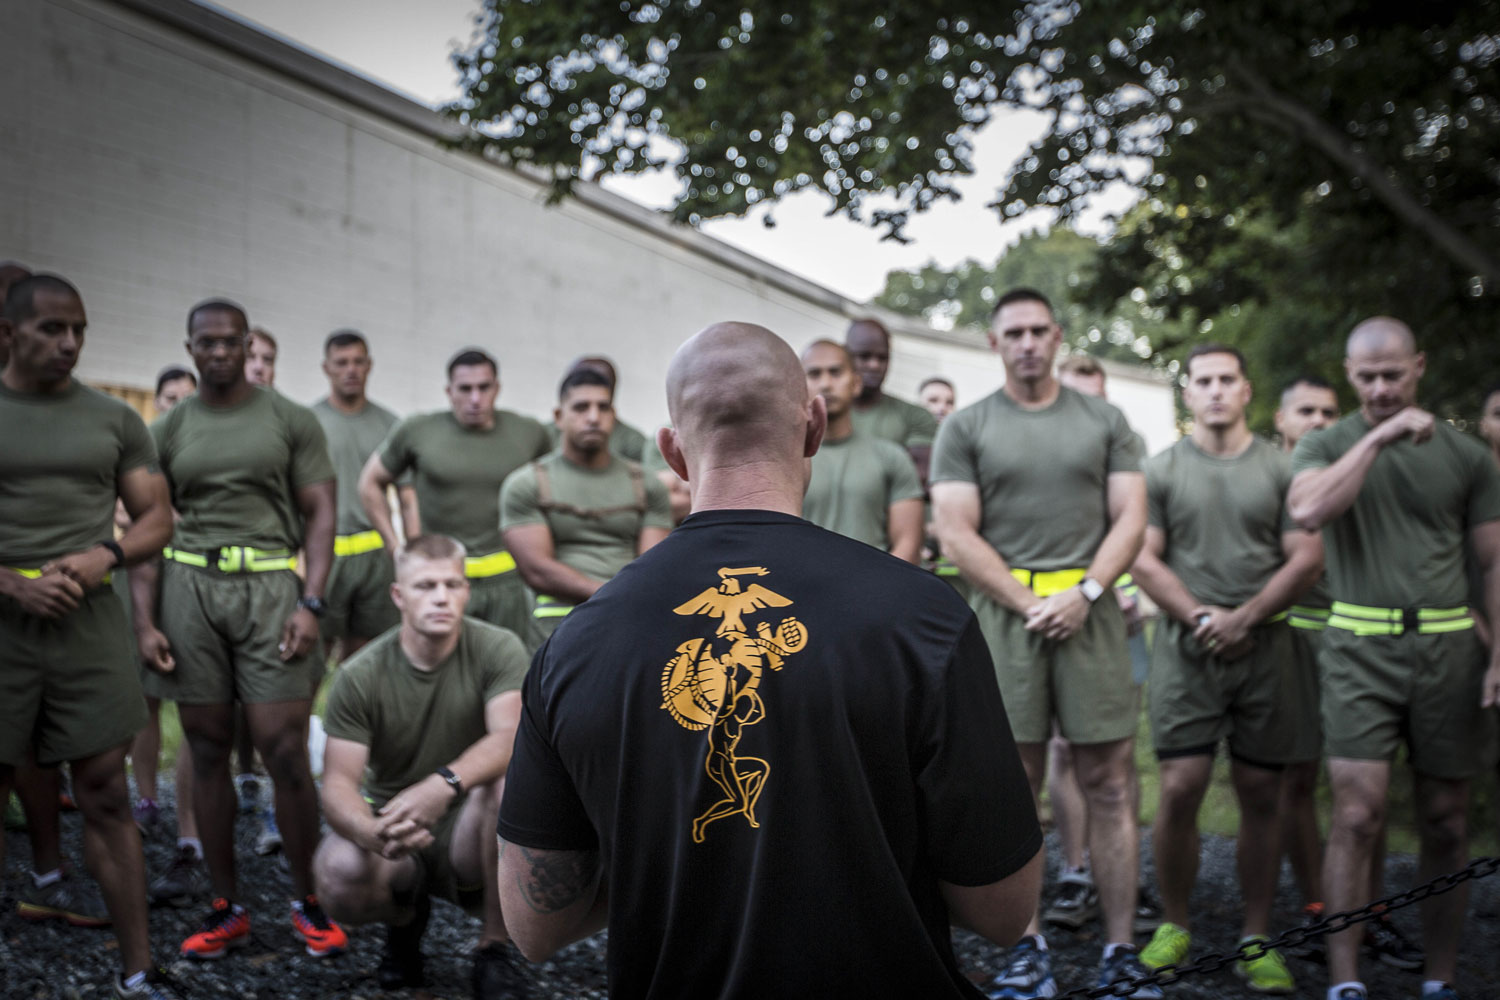 New Program Aims to Change Marine Corps' Fitness Culture